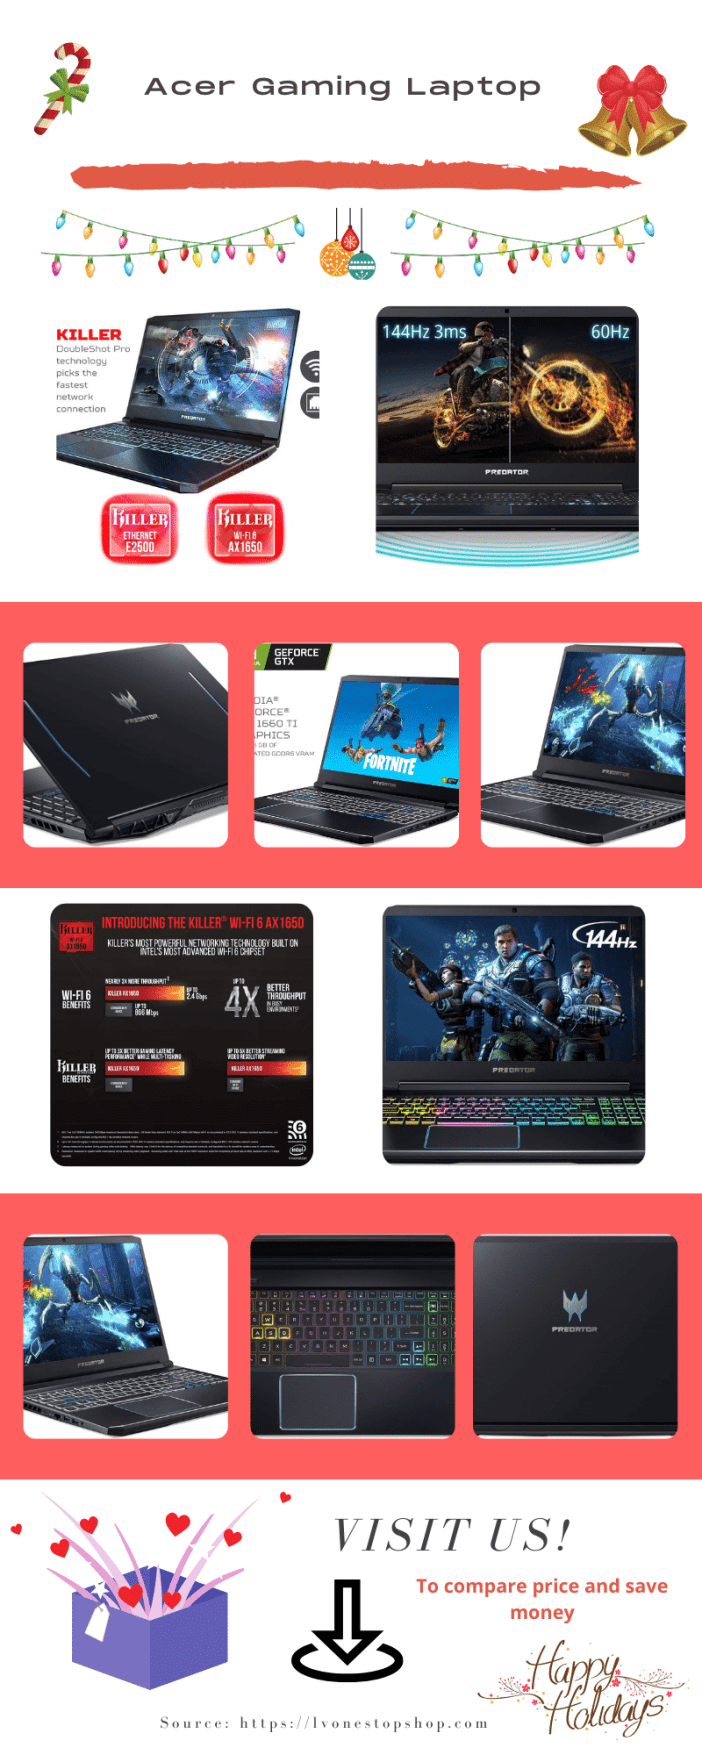 acer gaming laptop review